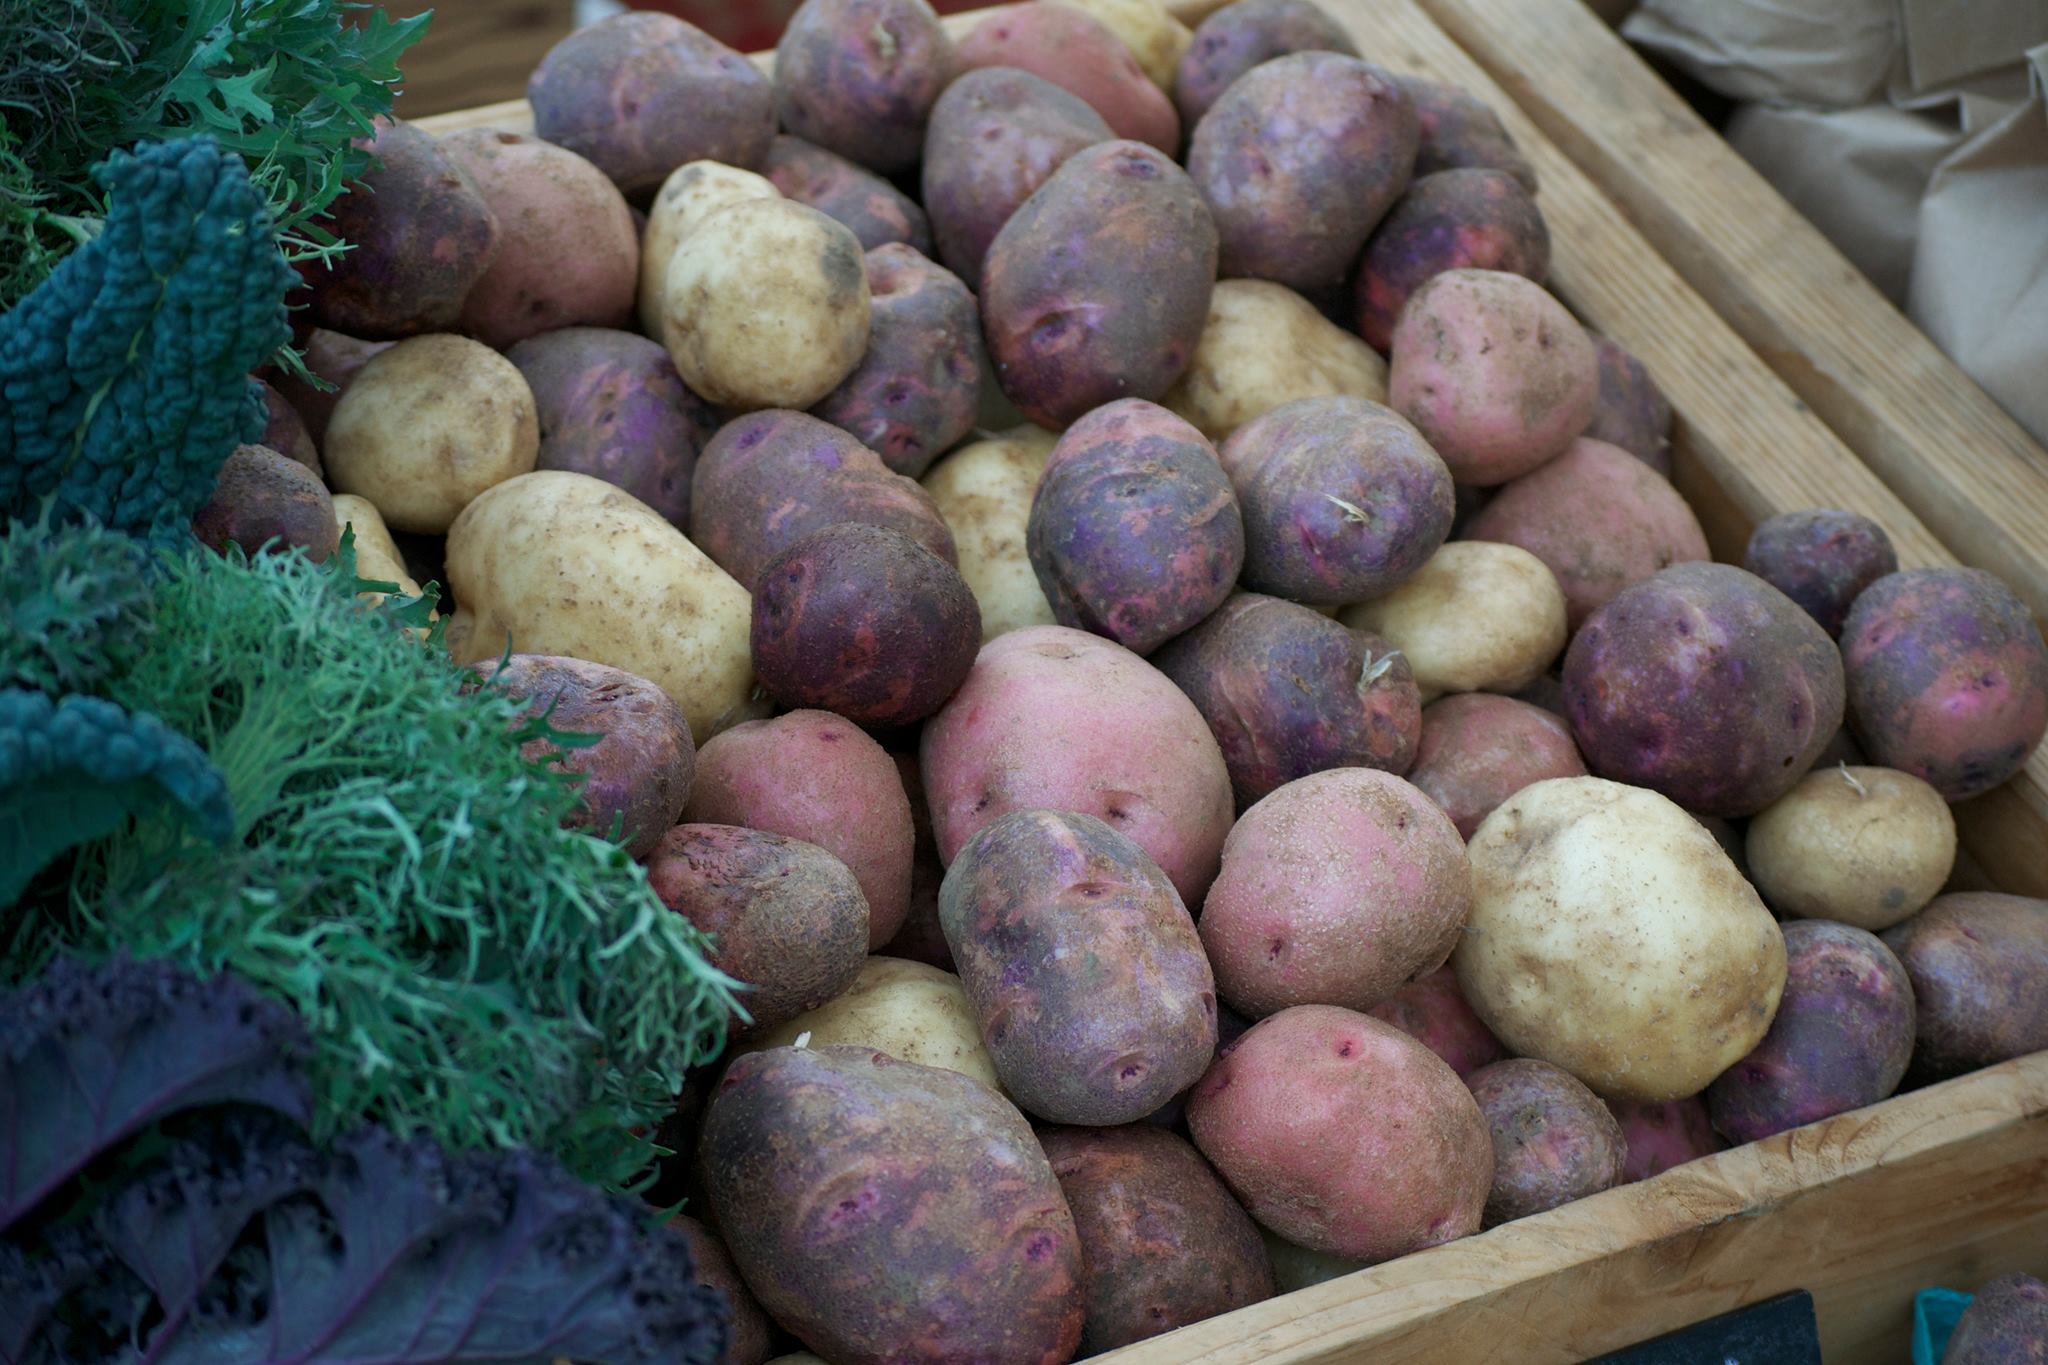 The Portland Farmers Market near PSU will remain open through the winter for the first time this year, offering shoppers an array of locally-farmed cruciferous and root vegetables.